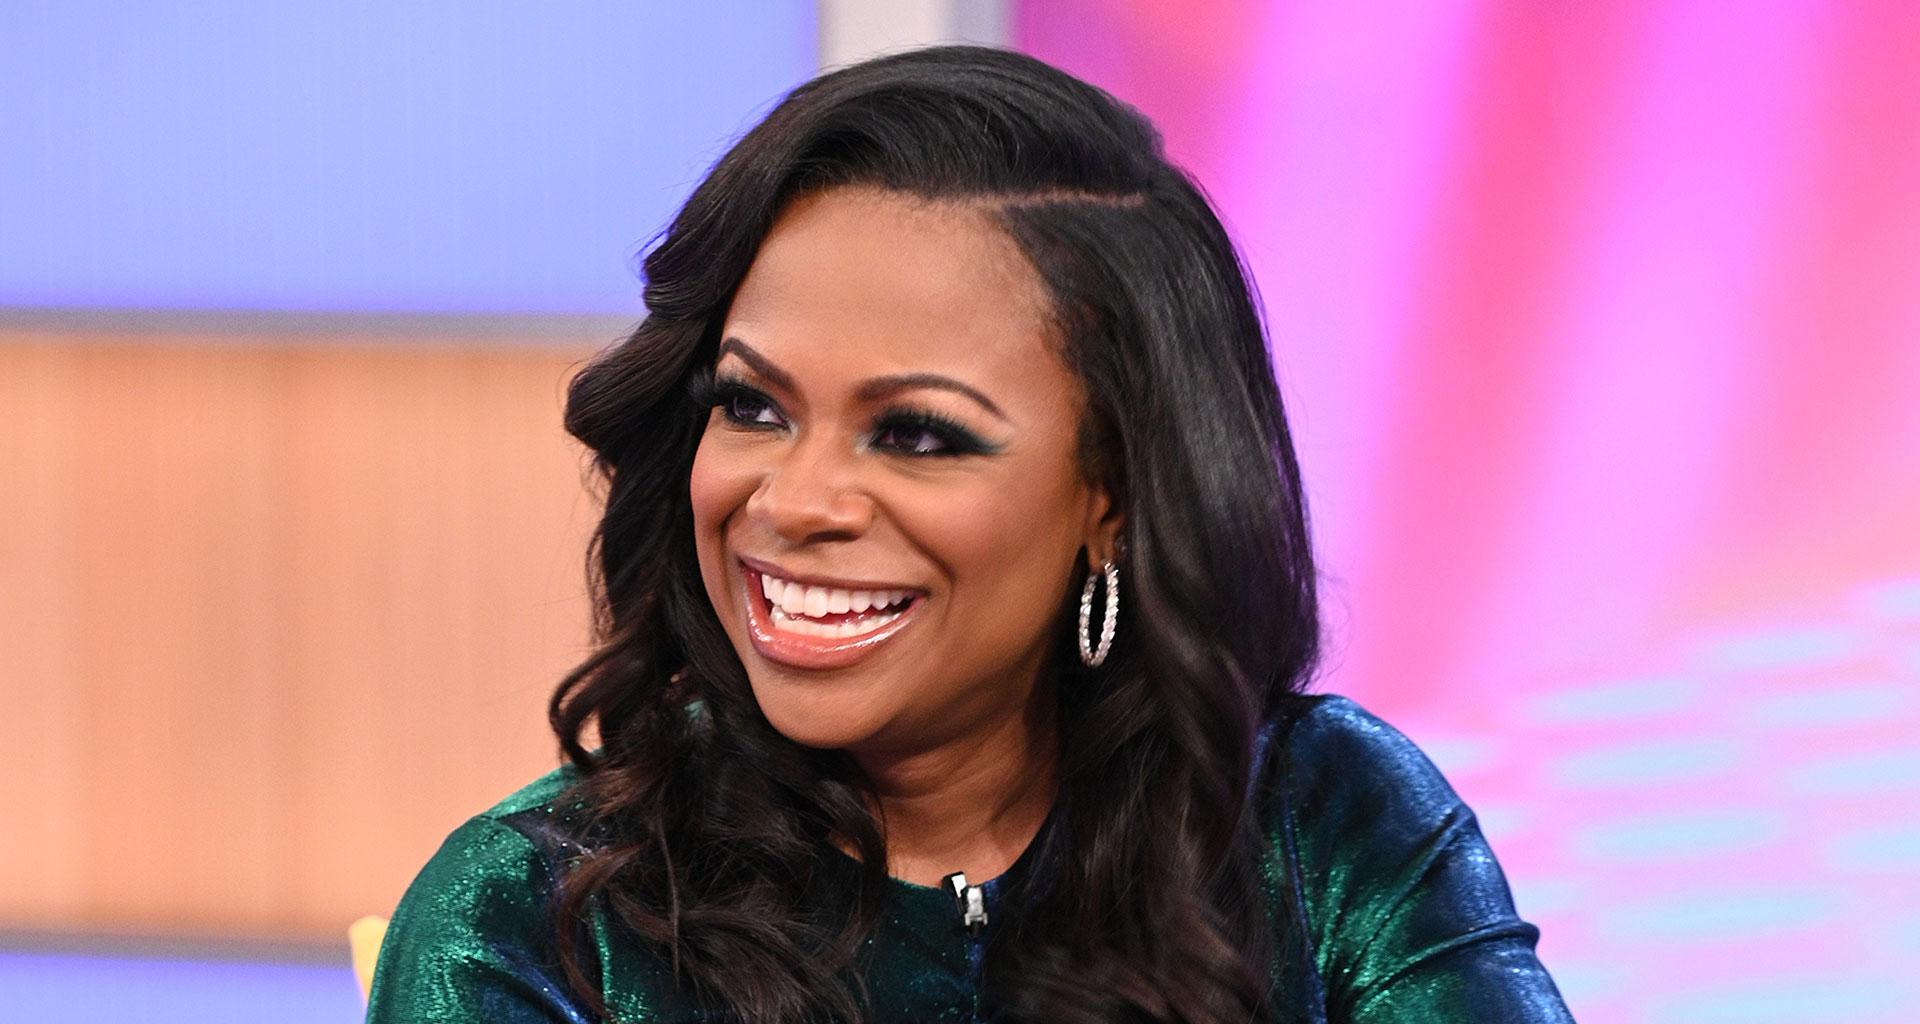 Kandi Burruss Talks About Getting Snatched - See Her Video